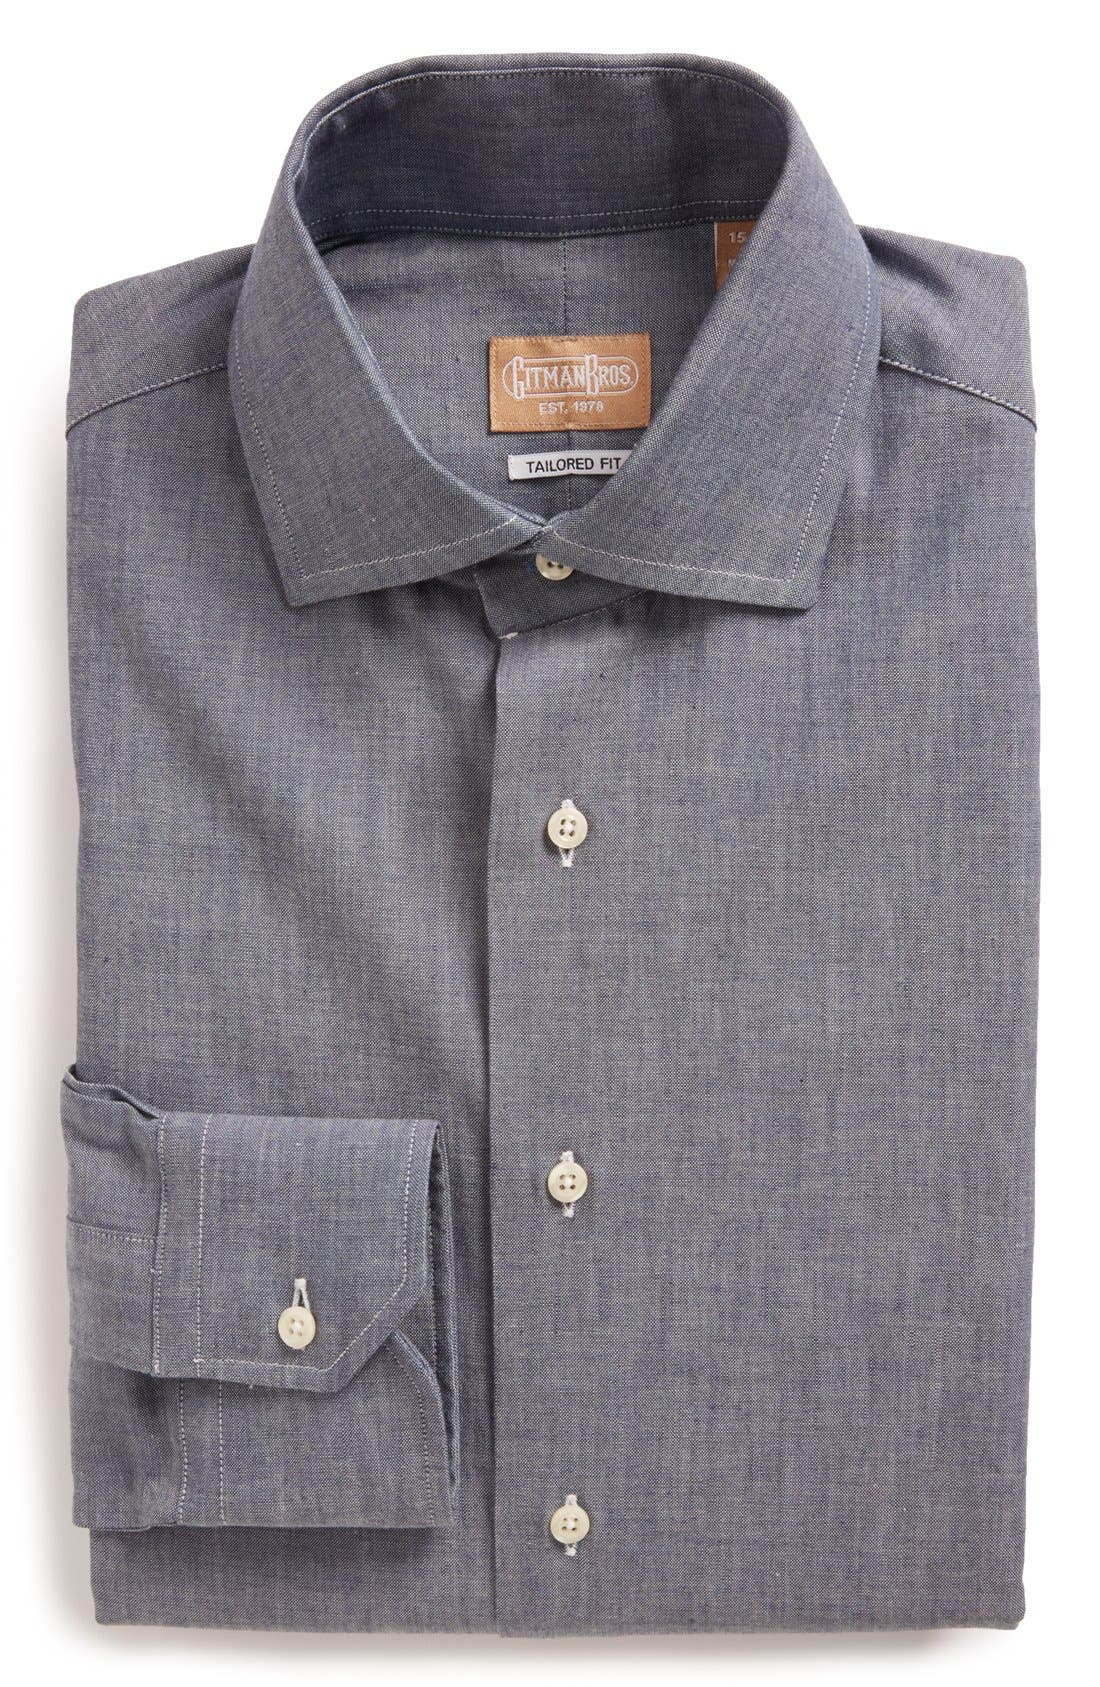 Main Image - Gitman Tailored Fit Chambray Dress Shirt